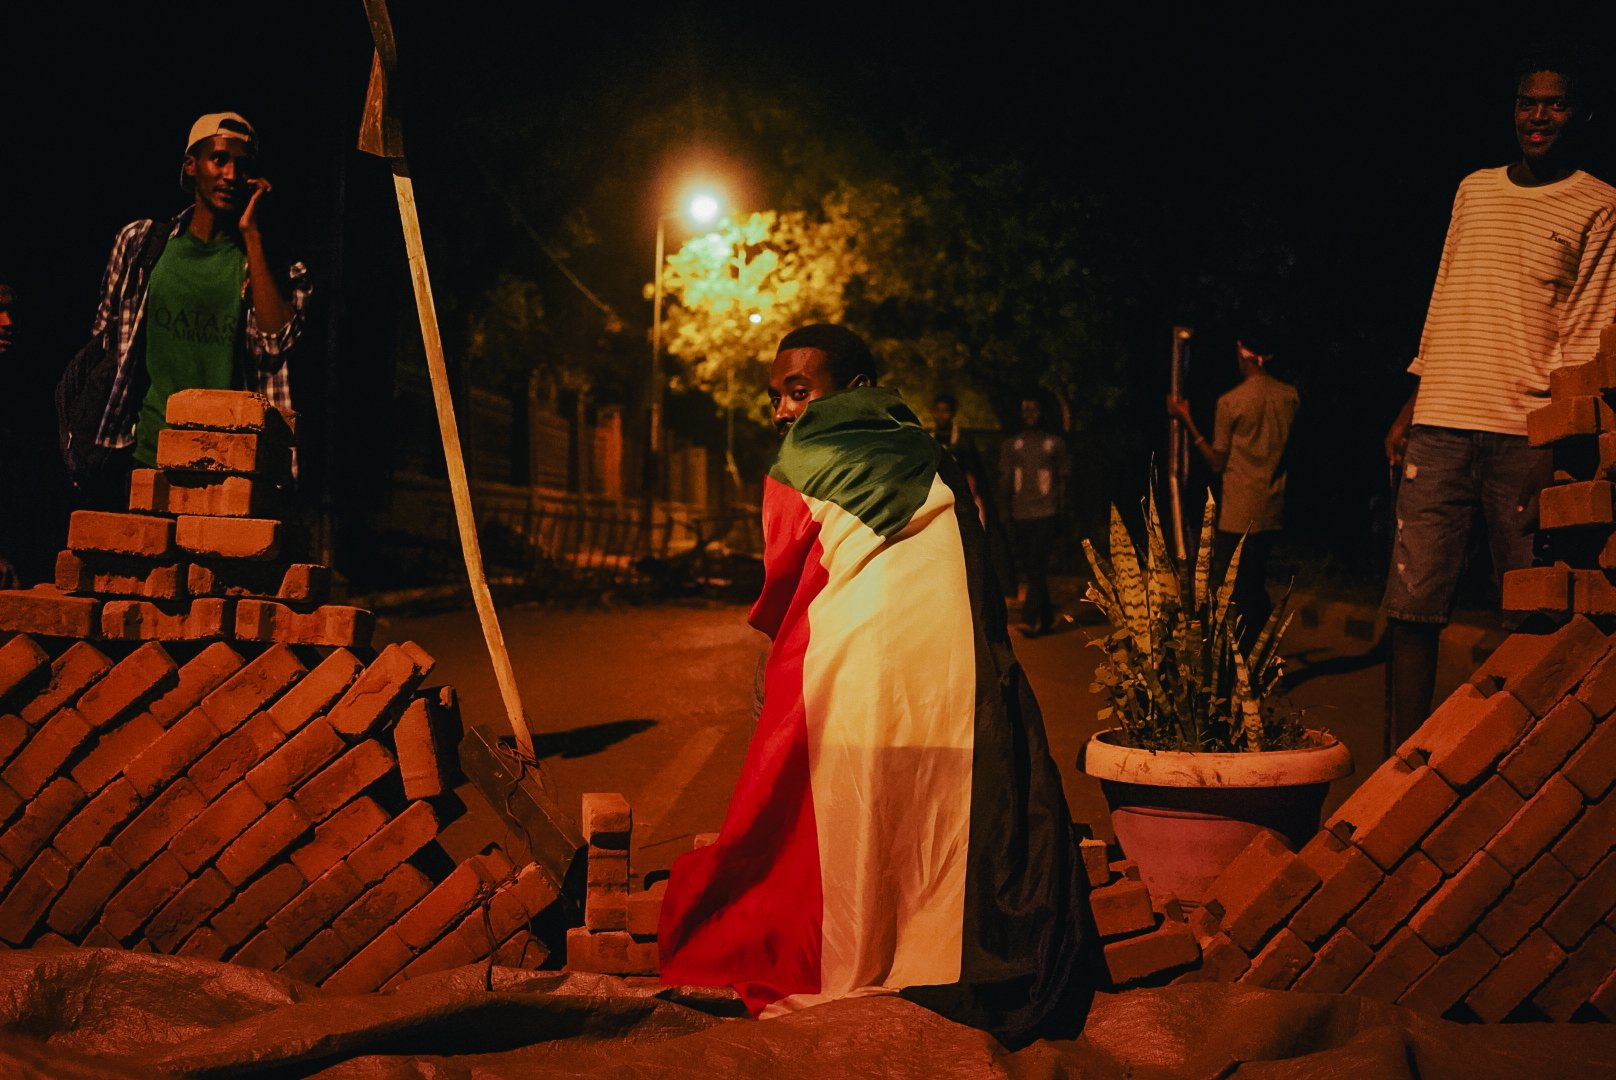 Sudanese protesters have built barricades in the streets near Colombia (MEE/Kaamil Ahmed)